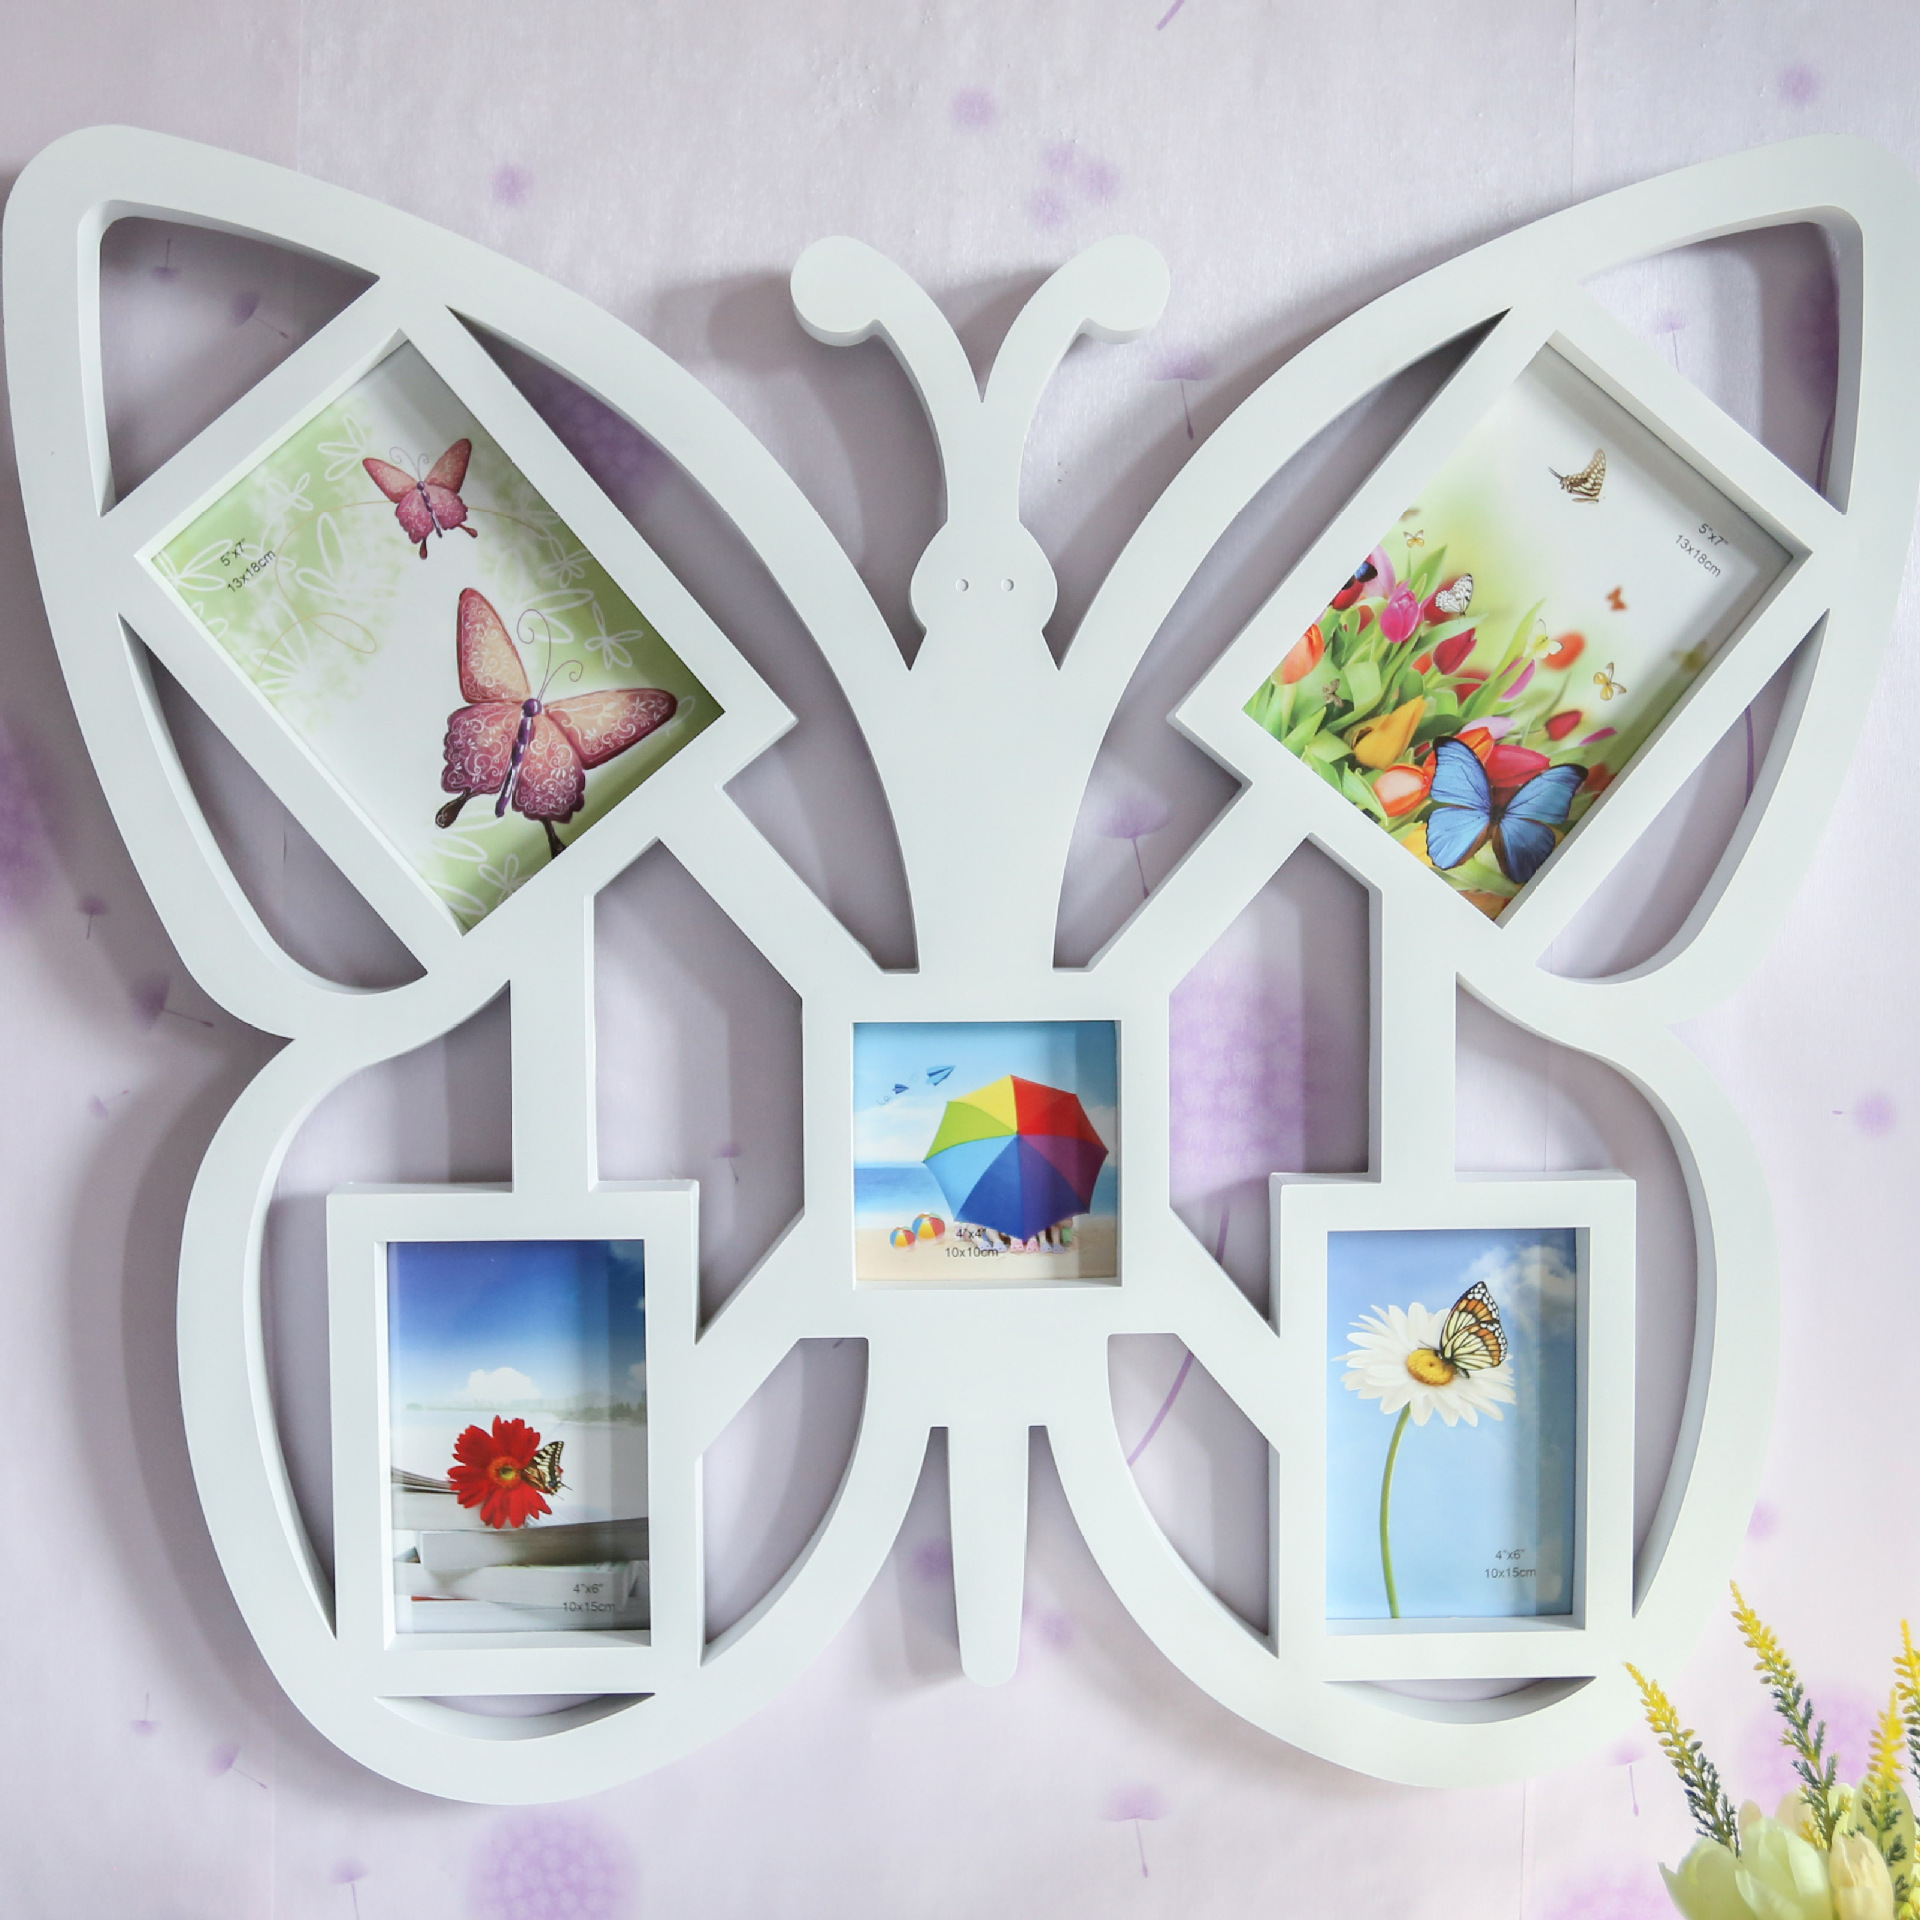 Hot Selling Newest Big Butterfly Creative Photo Frame Wall Hanging Body Combination Photo Frame, Personalized Art Photo Frame-in Frame from Home & Garden    1